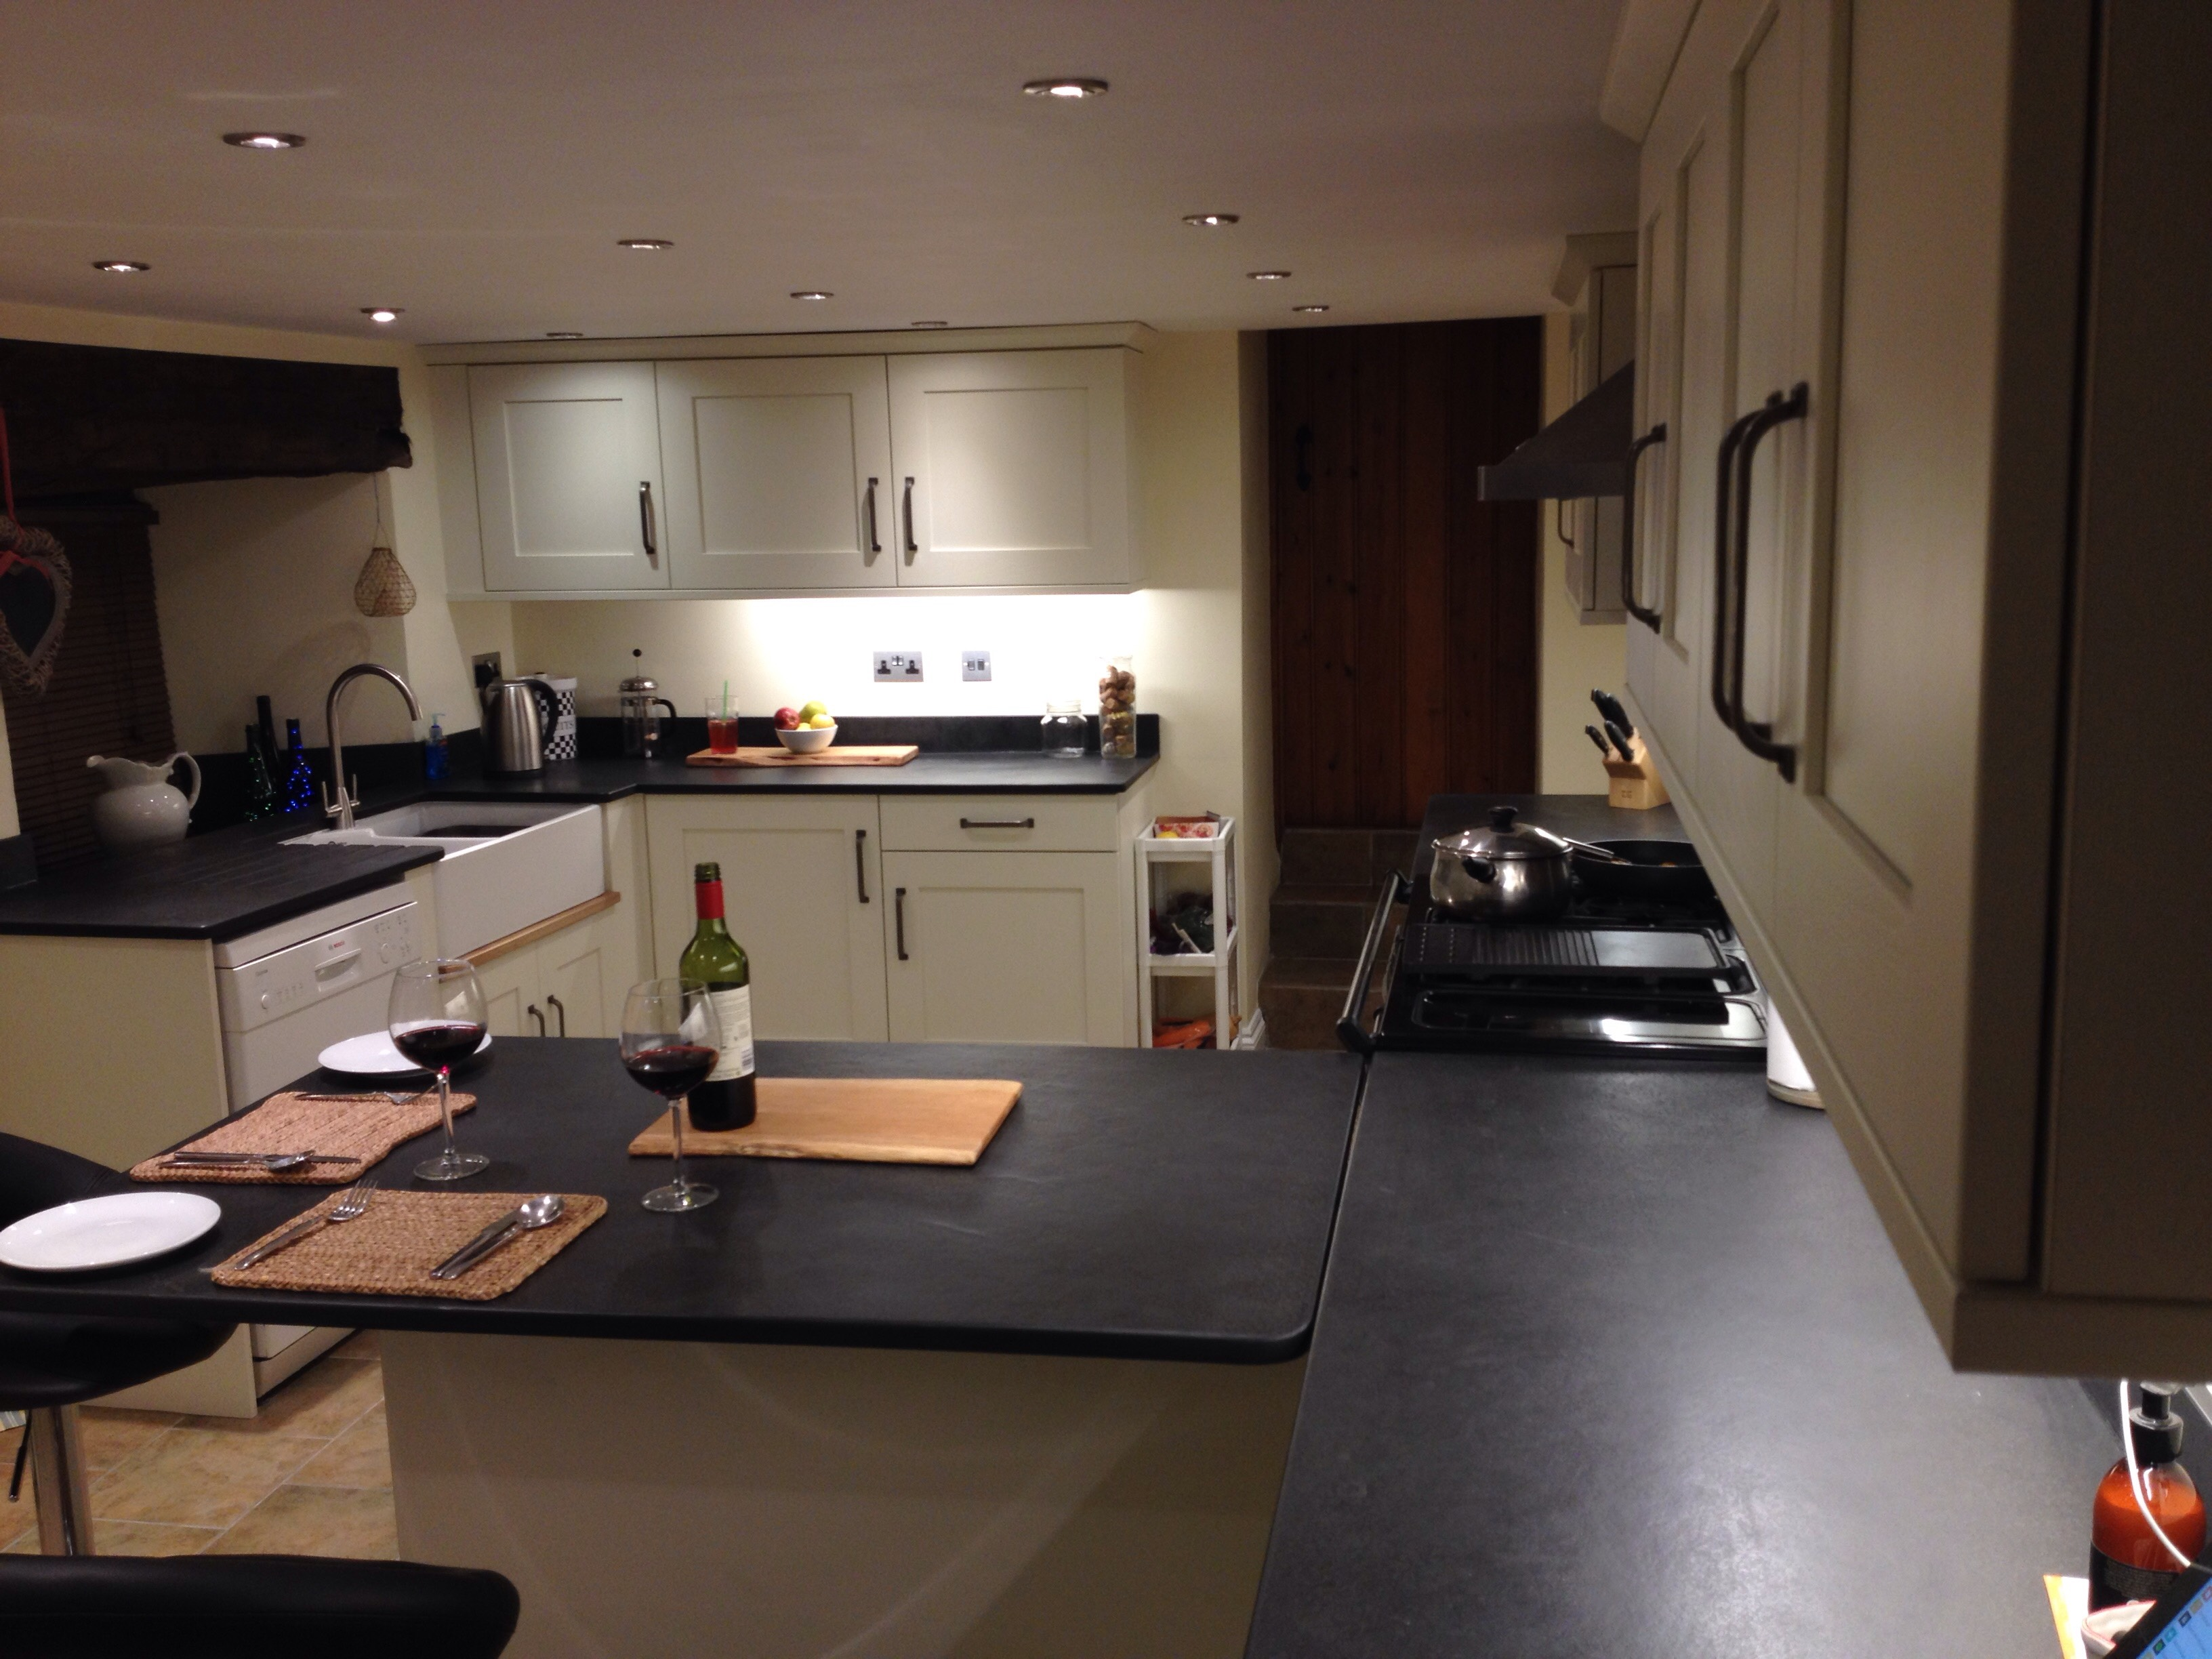 Full Breakfast Bar And Kitchen Surfaces In Slate